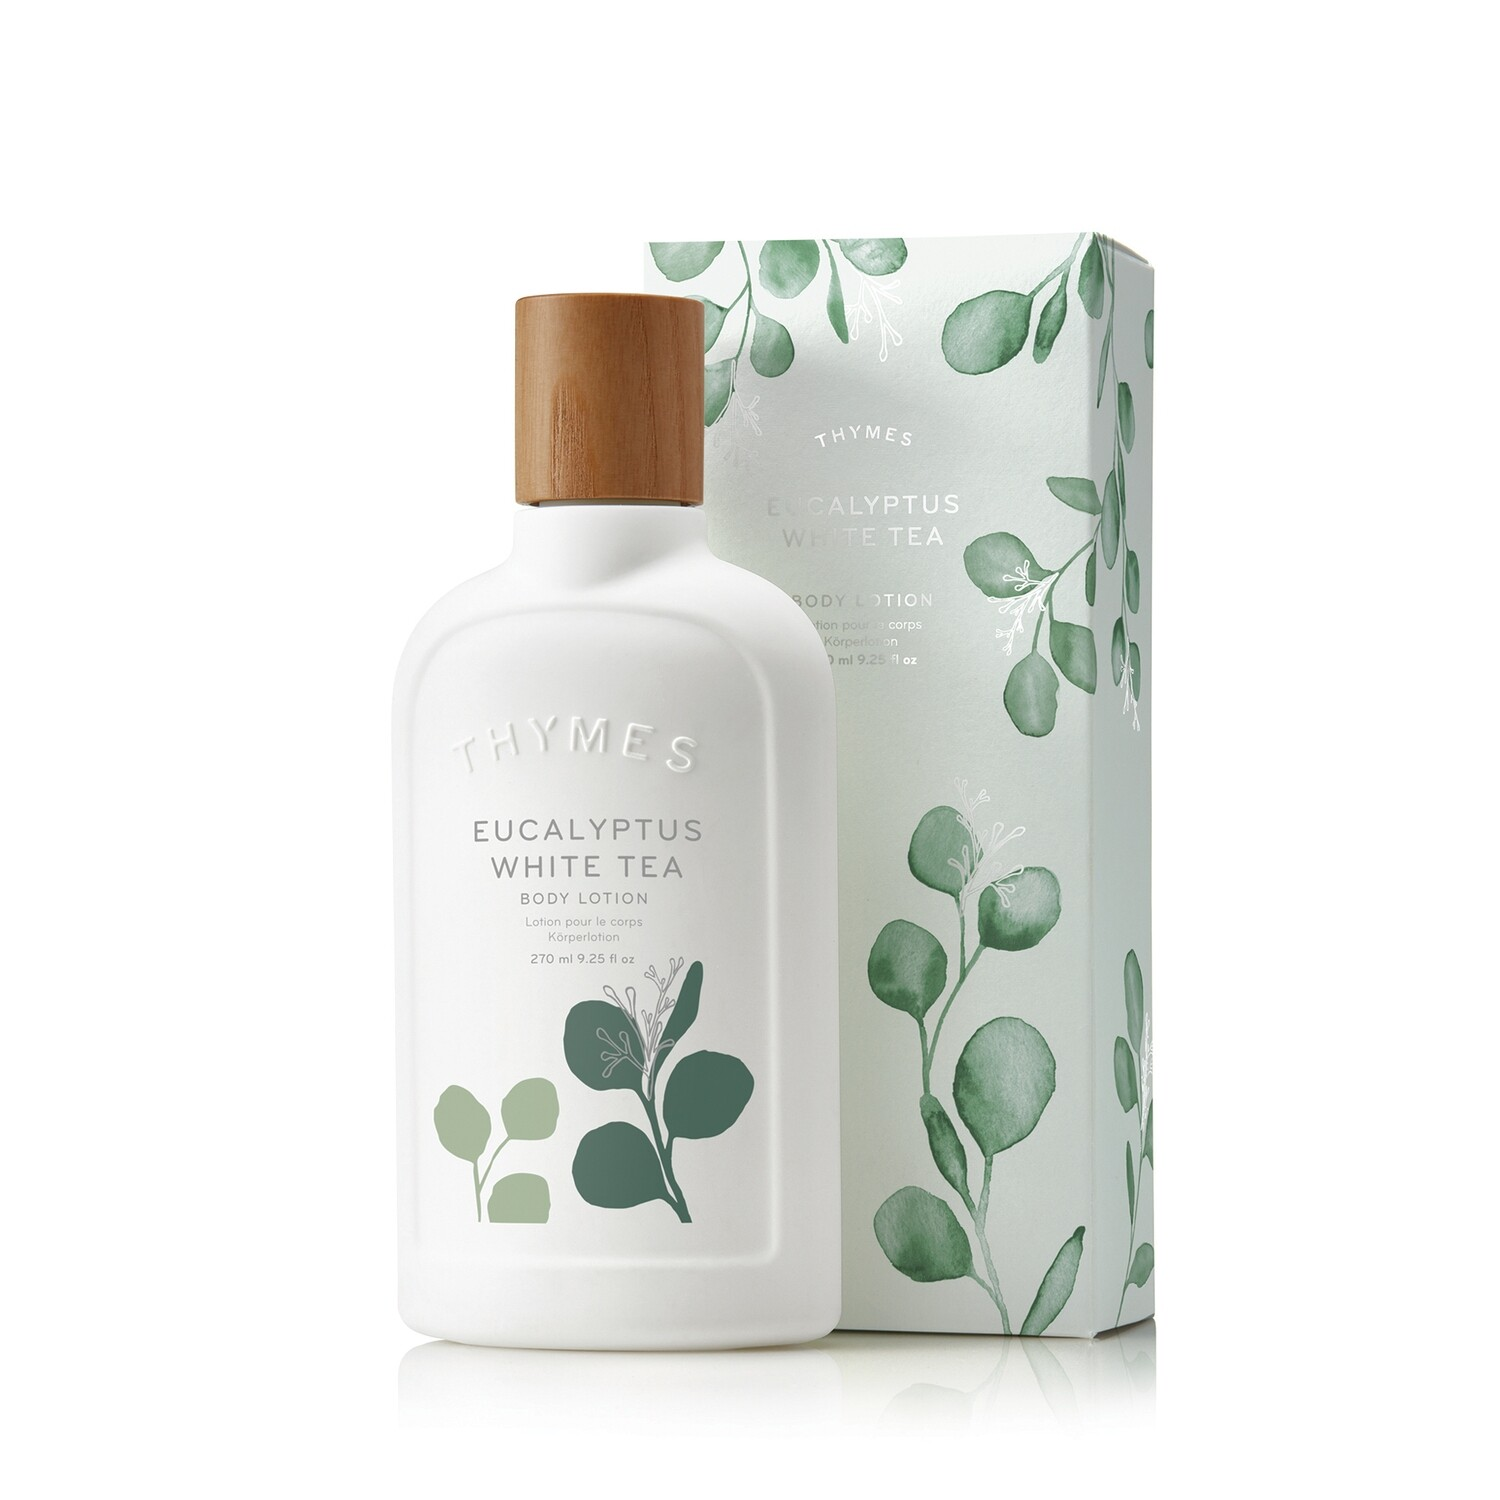 Eucalyptus White Tea Body Lotion